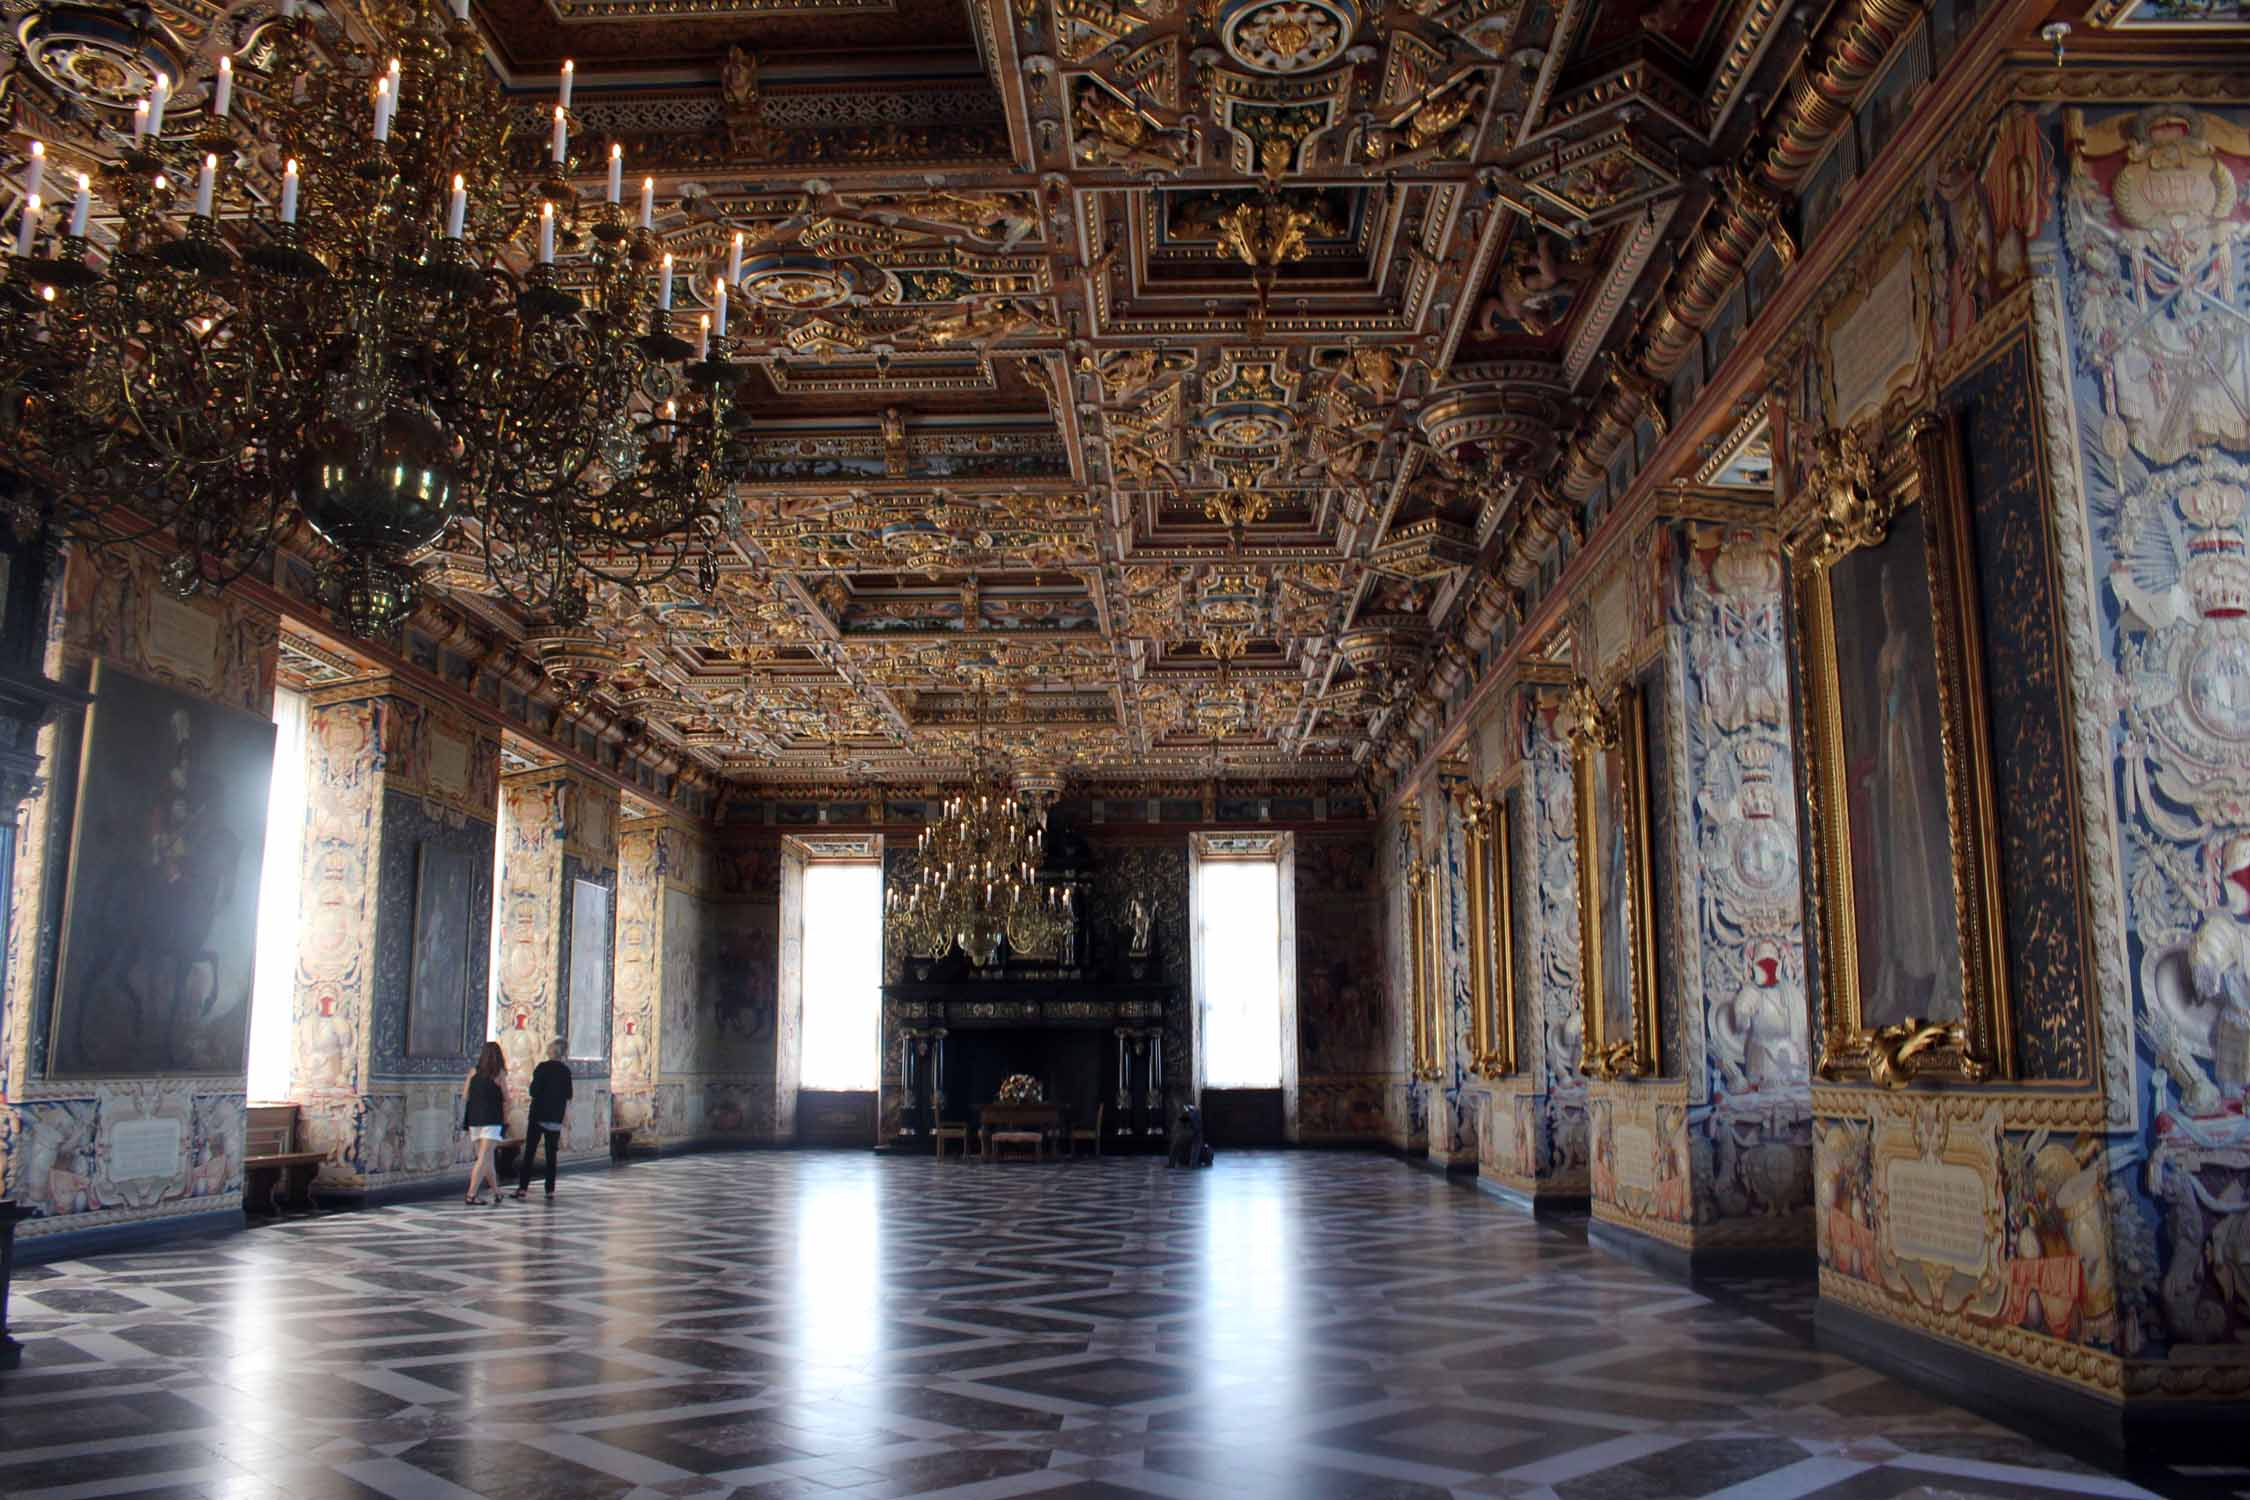 Frederiksborg castle, the Great Hall